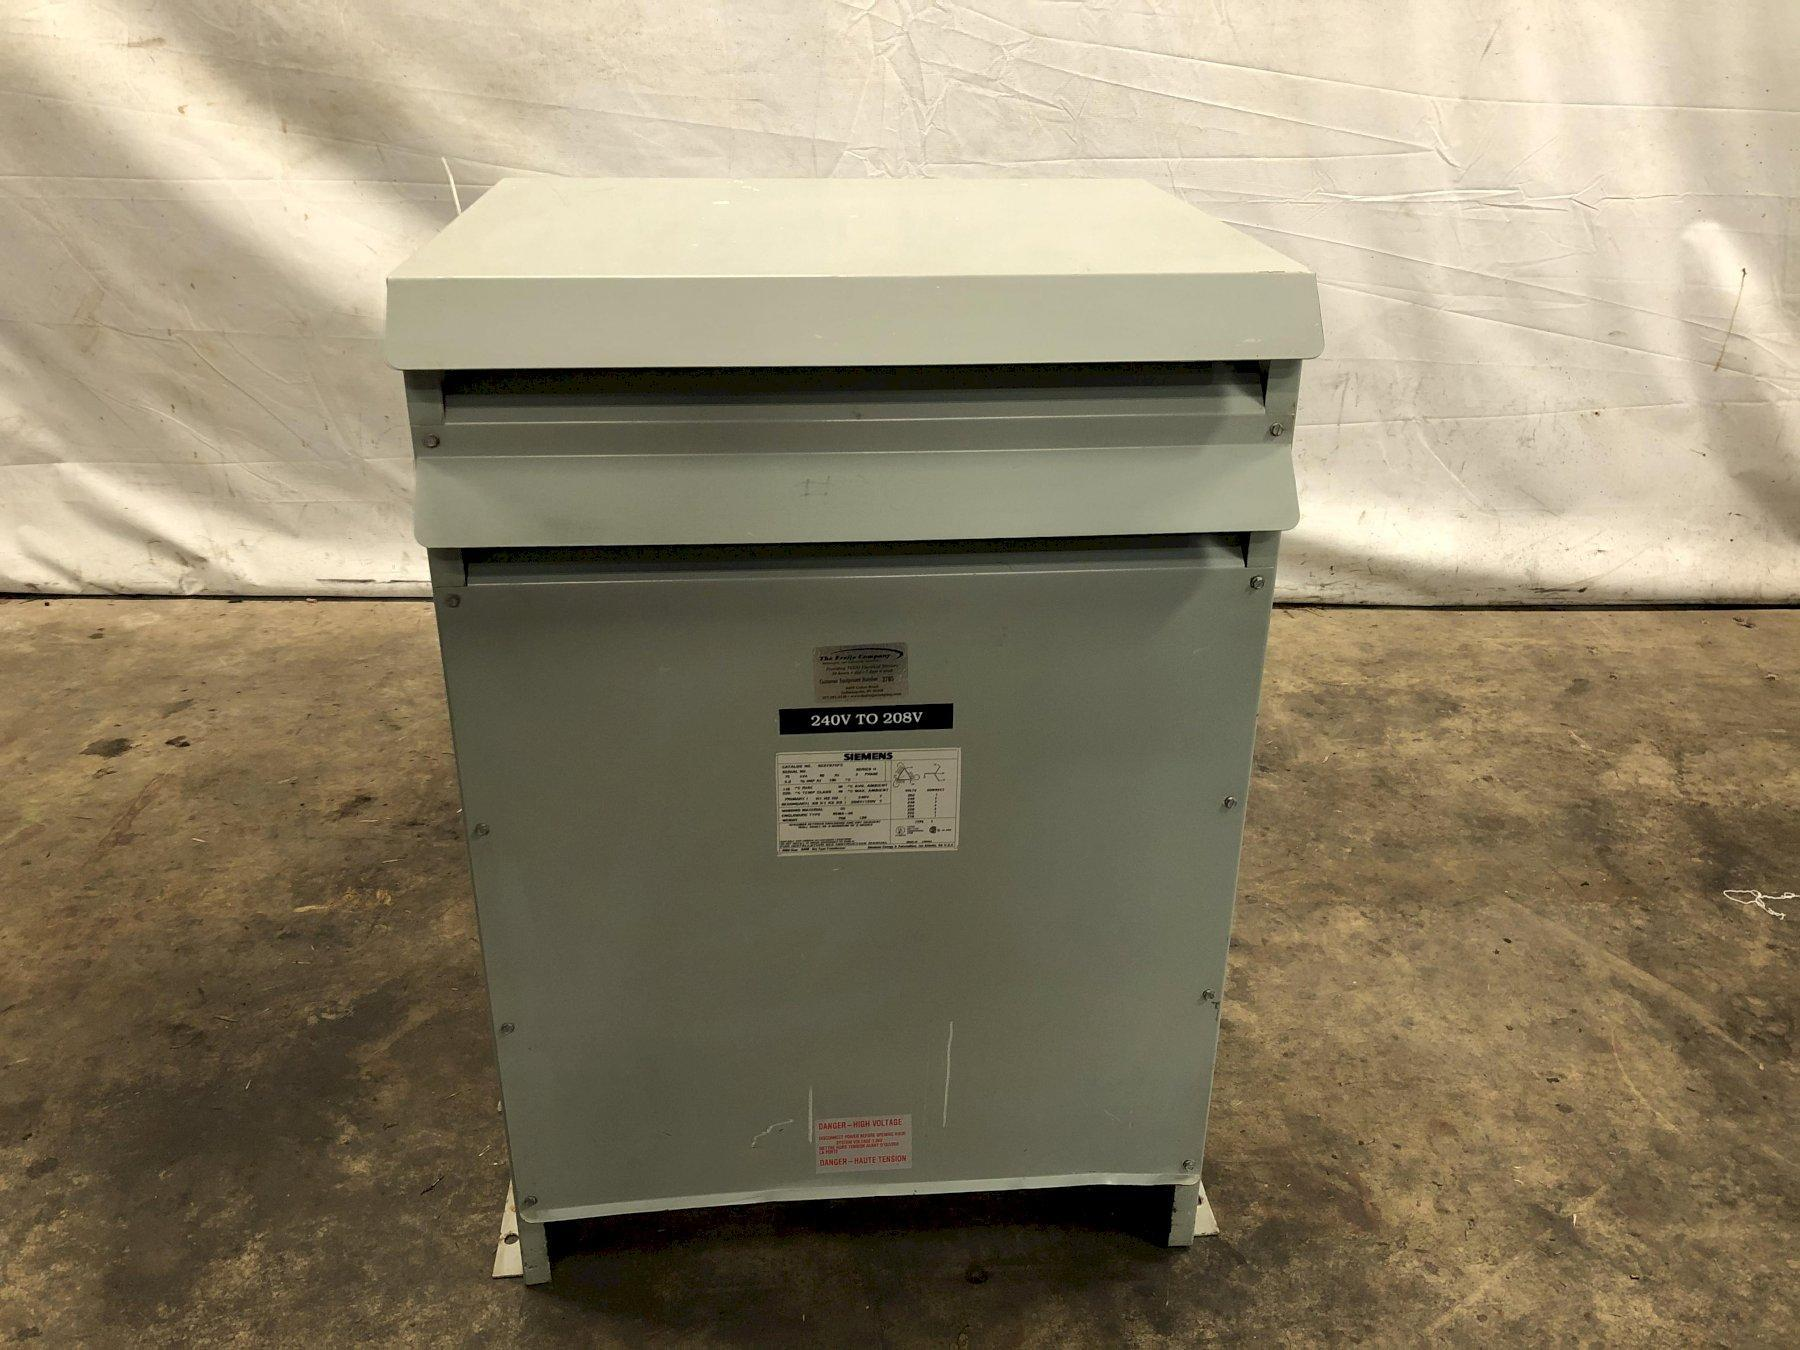 75 KVA 240 TO 208Y/120 VOLT 3 PHASE ELECTRIC POWER TRANSFORMER: STOCK #13766